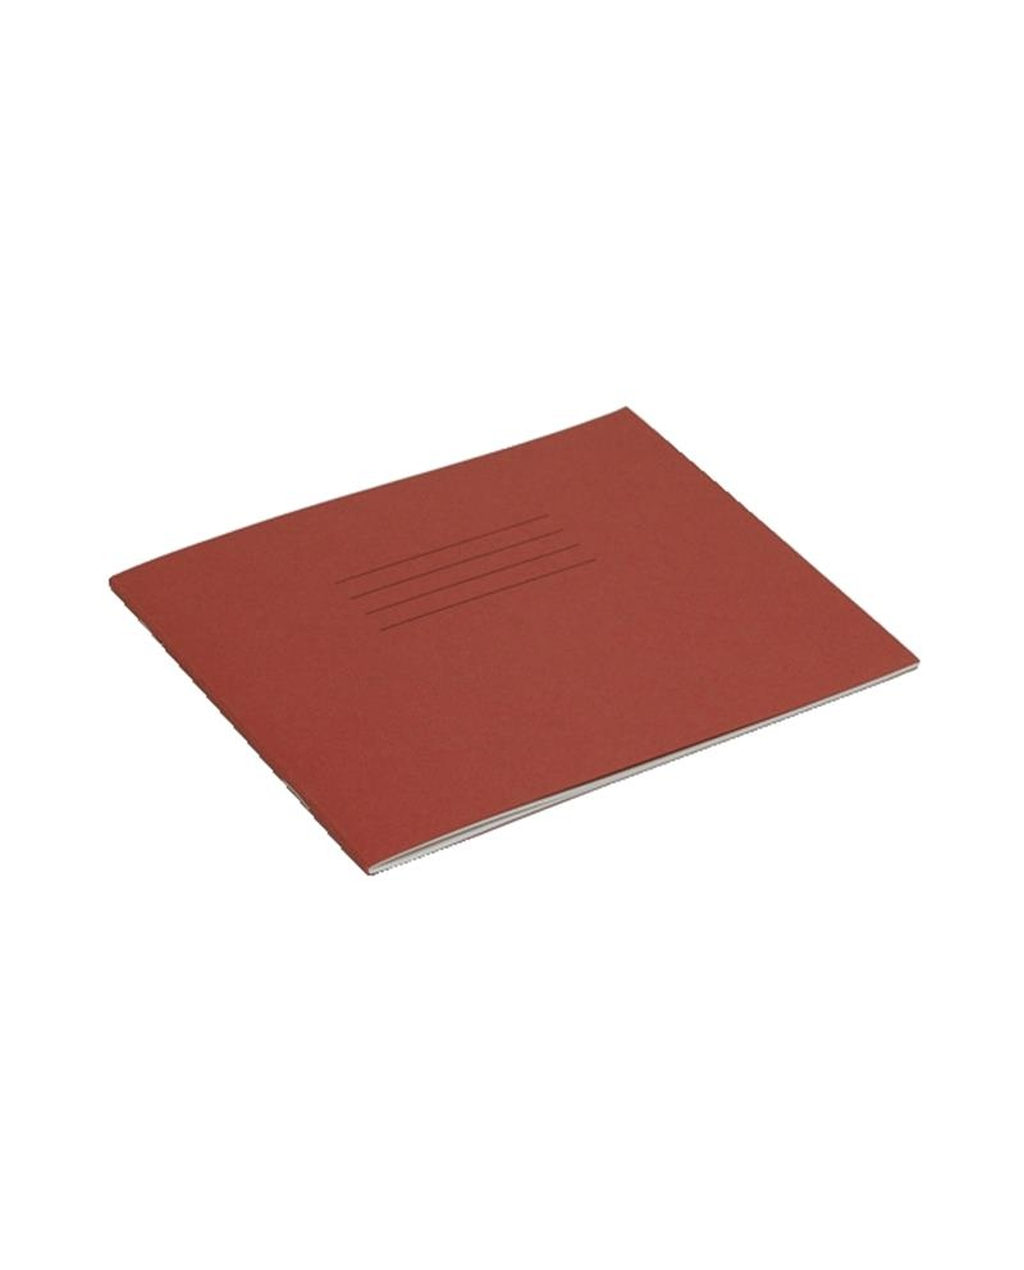 Exercise Book 5.25 x 6.5 (133 x 165mm) Red Cover 11mm Ruled 24 Pages